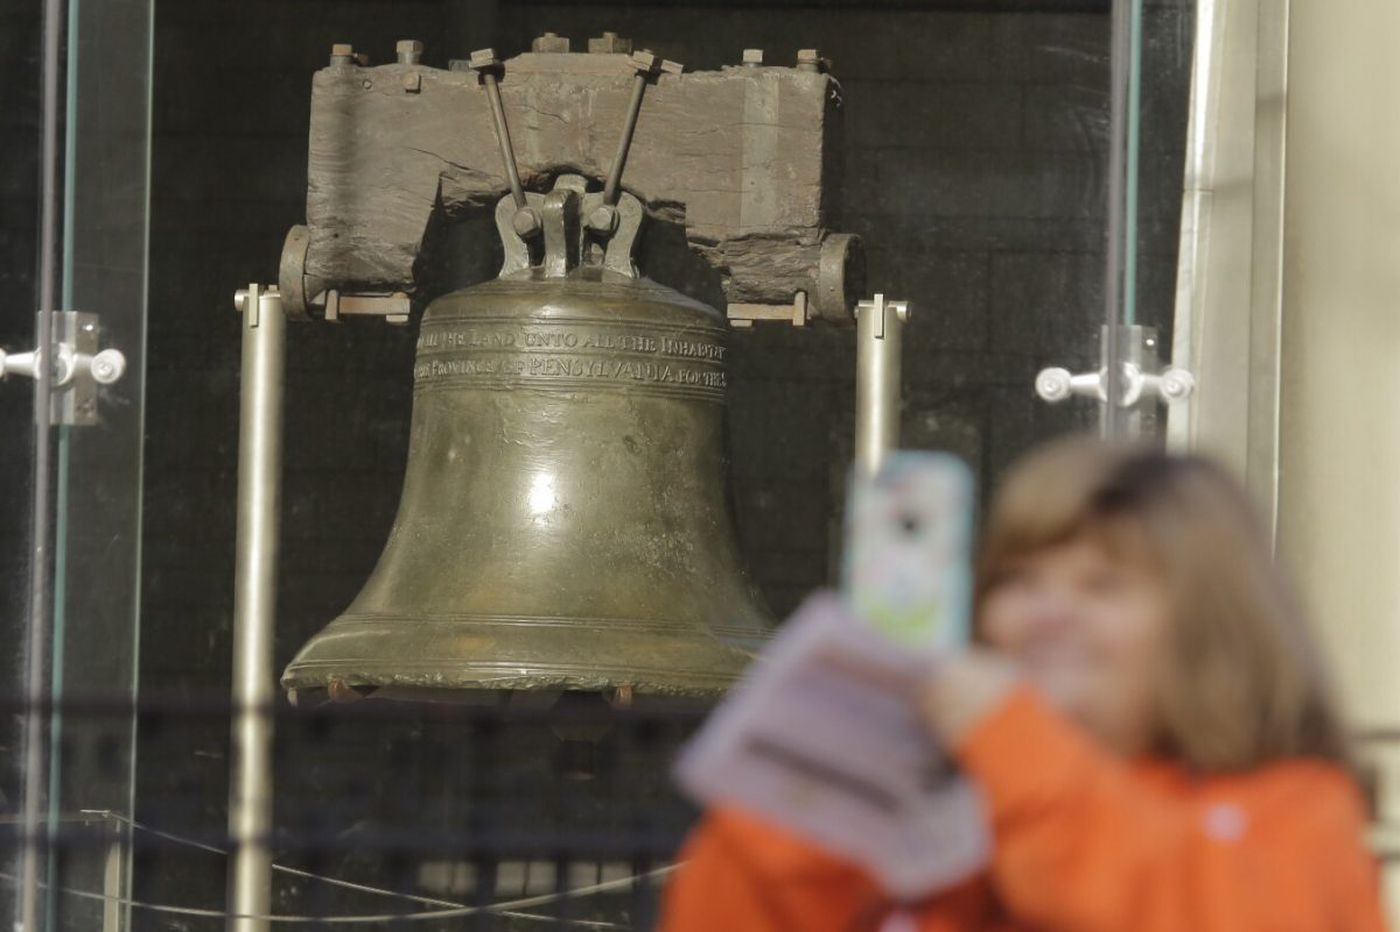 Independence Hall, Liberty Bell reopen after shutdown